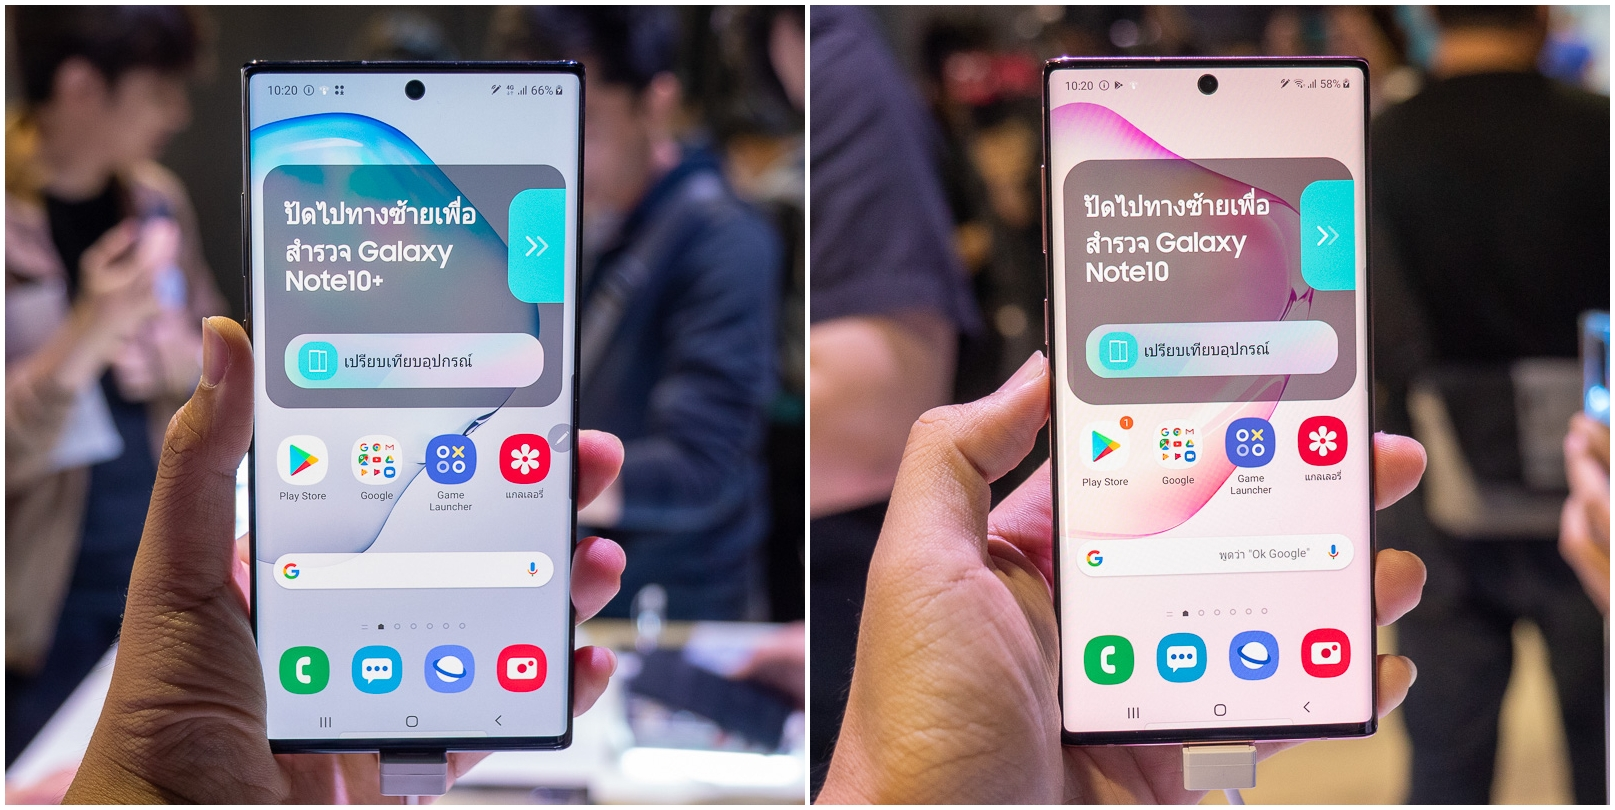 Hands on Samsung Galaxy Note 10 and Note 10 Plus SpecPhone Compare